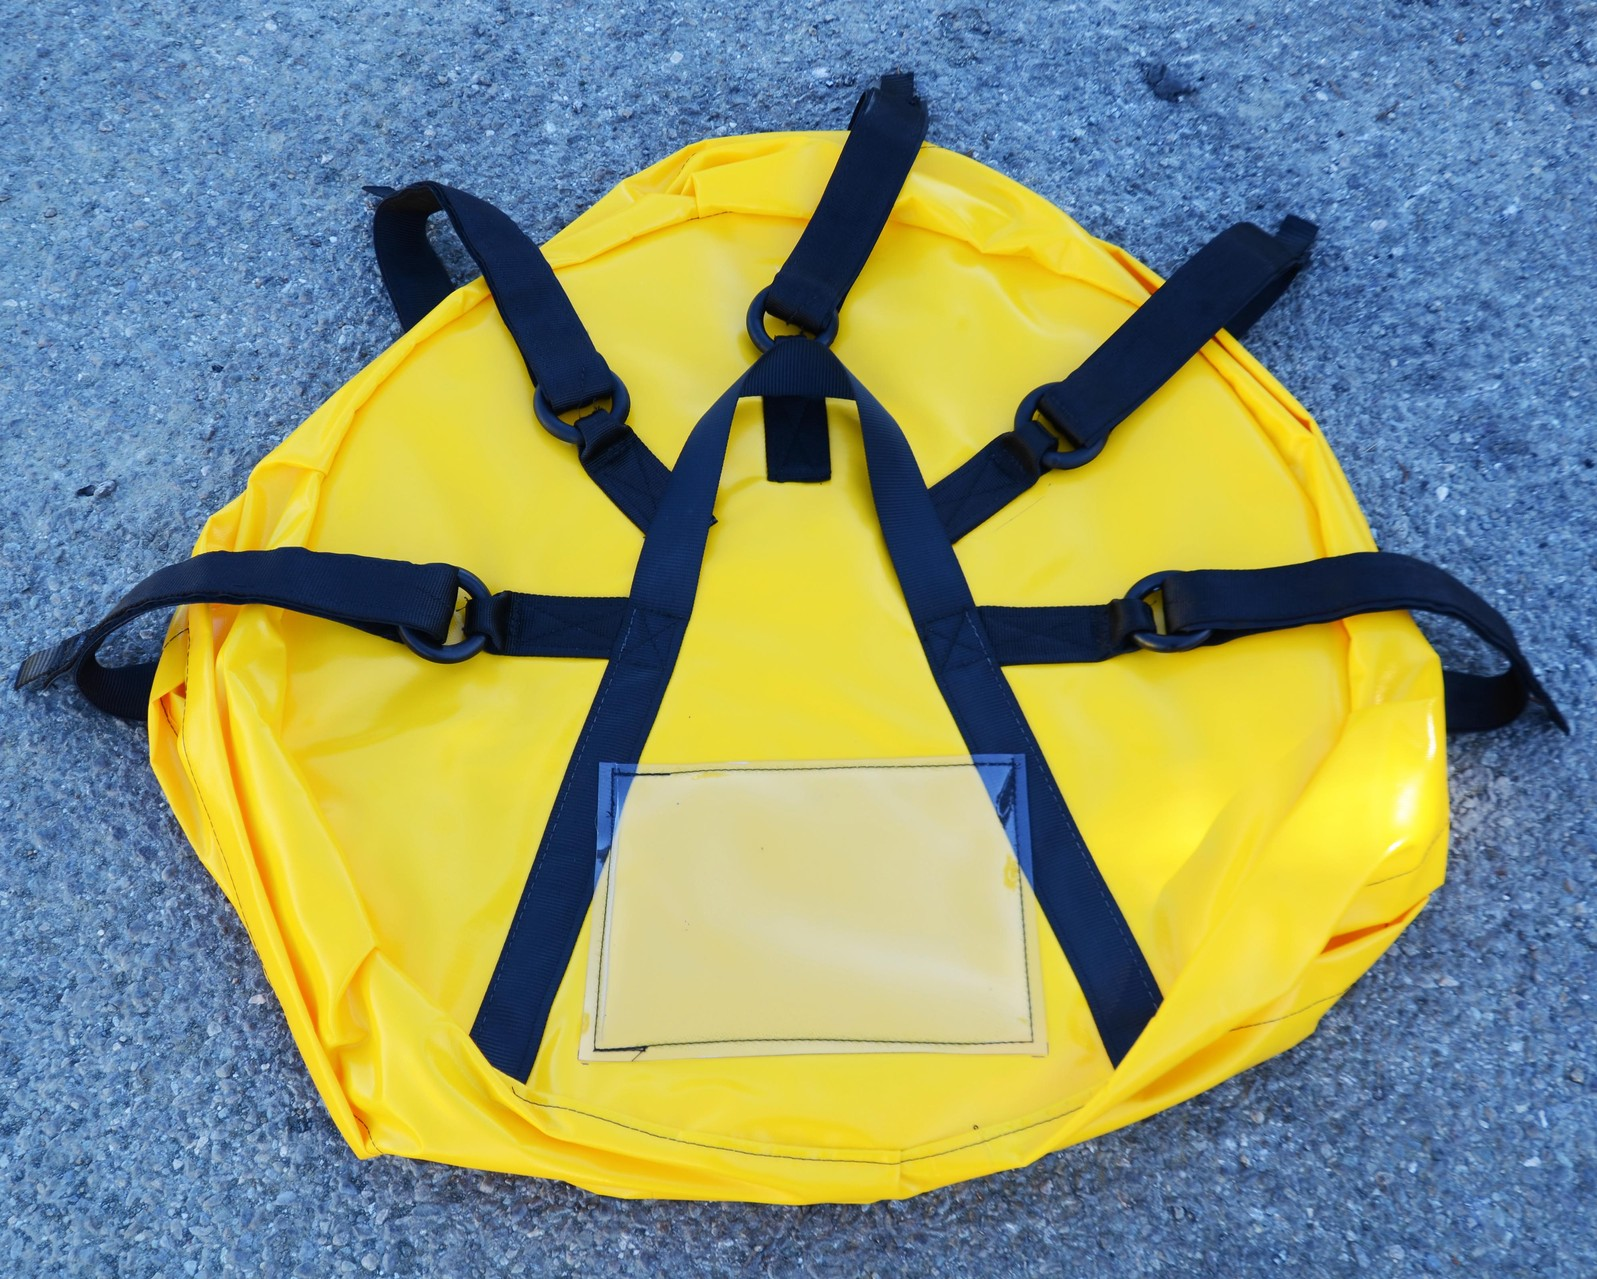 Aircraft Wheel Bag